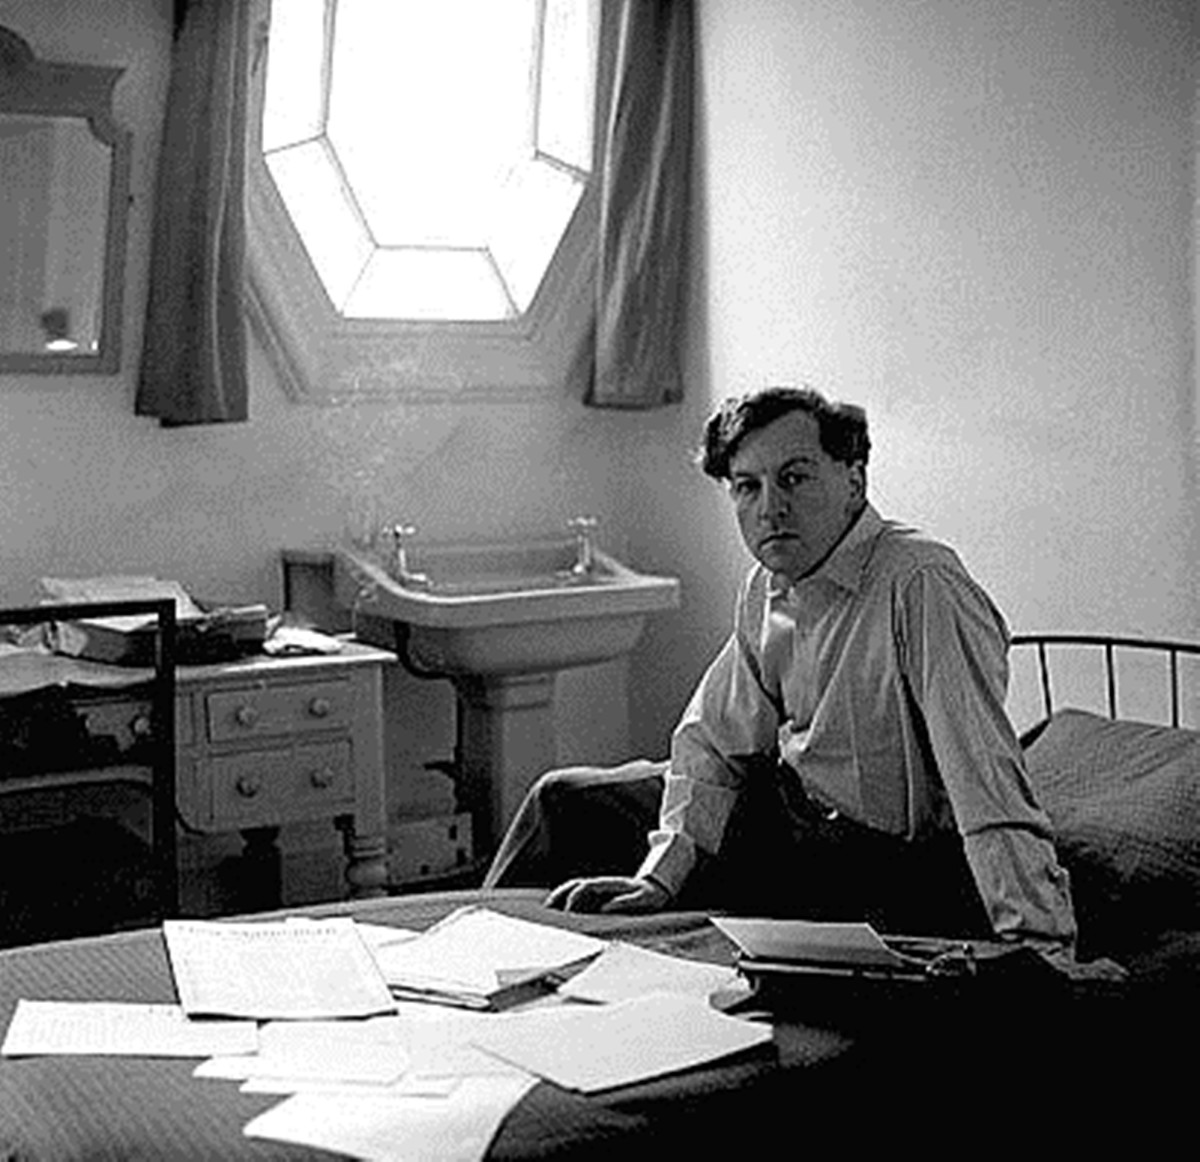 The world-famous playwright and novelist Keith Waterhouse, who lived next door to my grandma in Hunslet when my mum was a child.